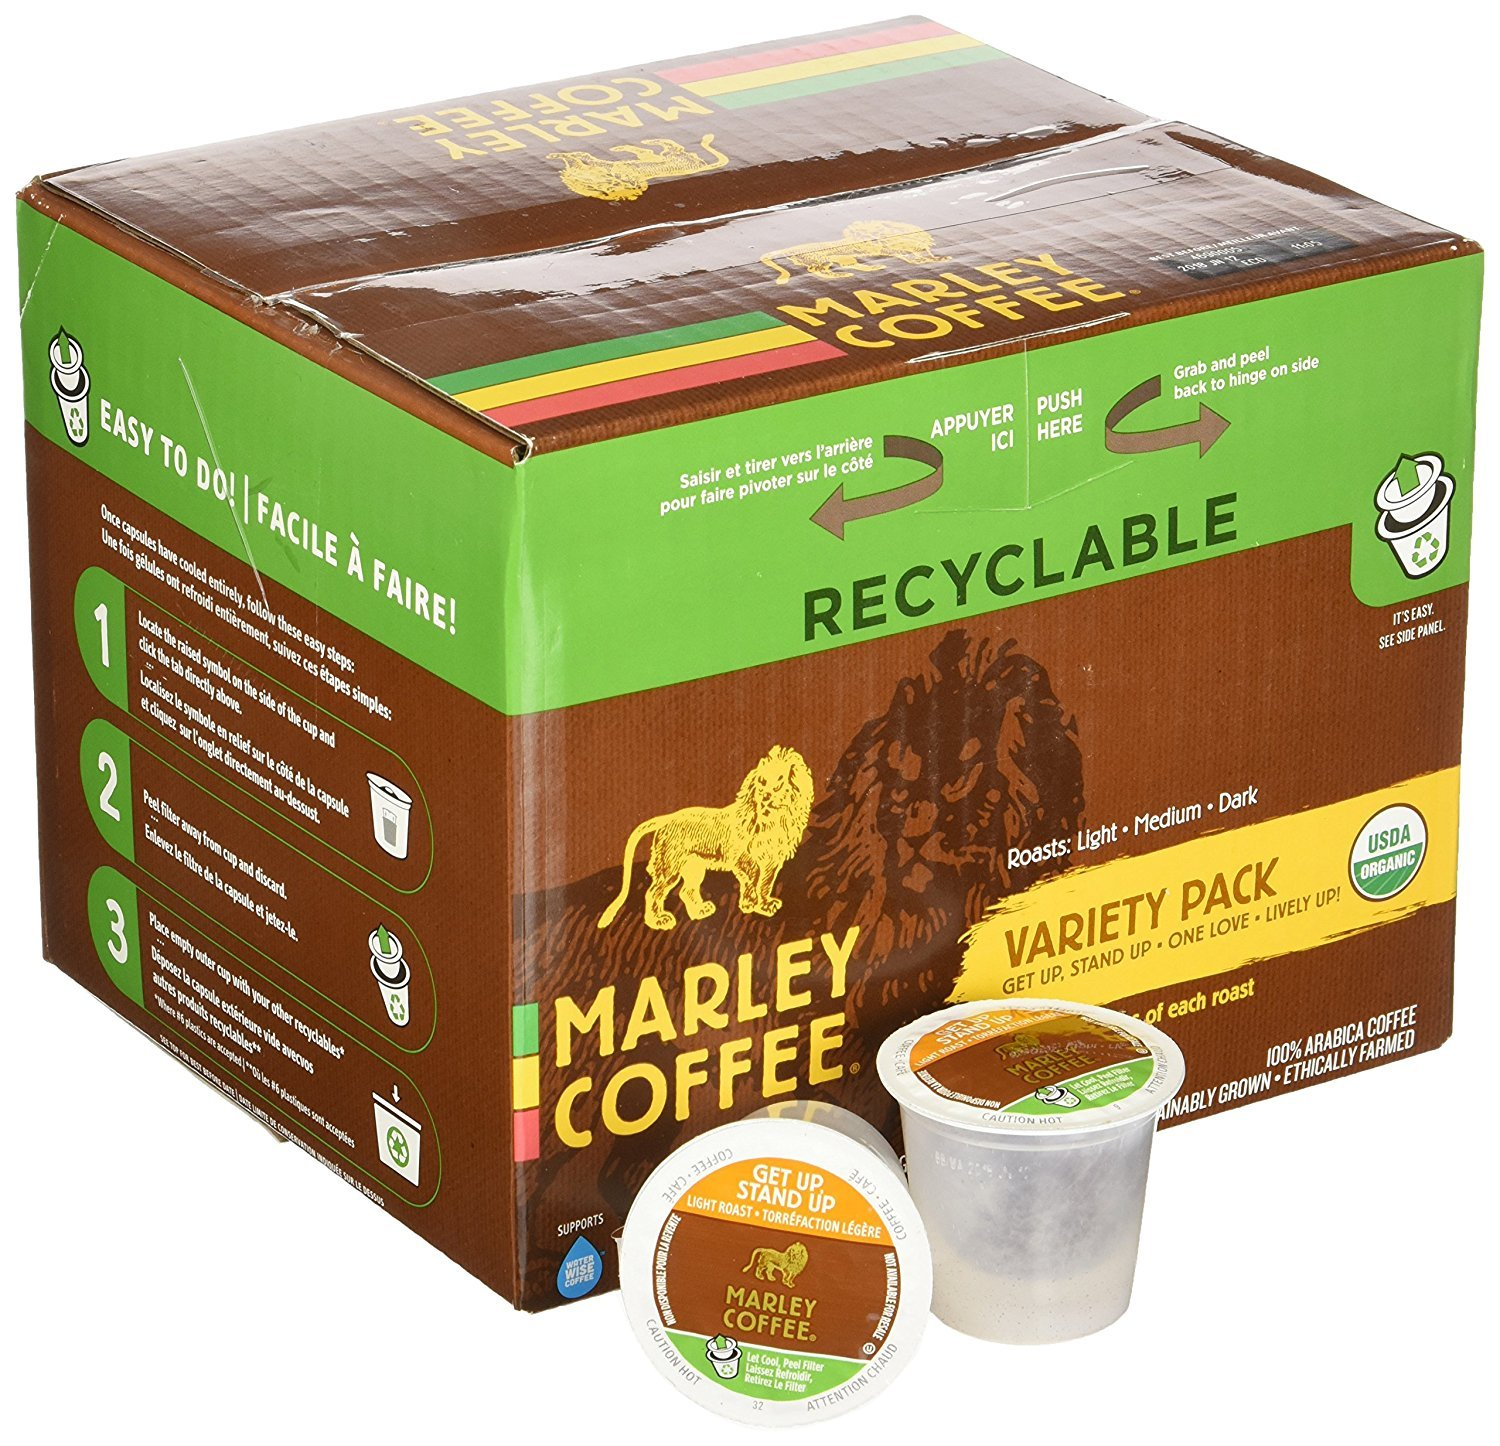 Marley Coffee Get Up Stand Up Single Serve Coffee (24 Pack)